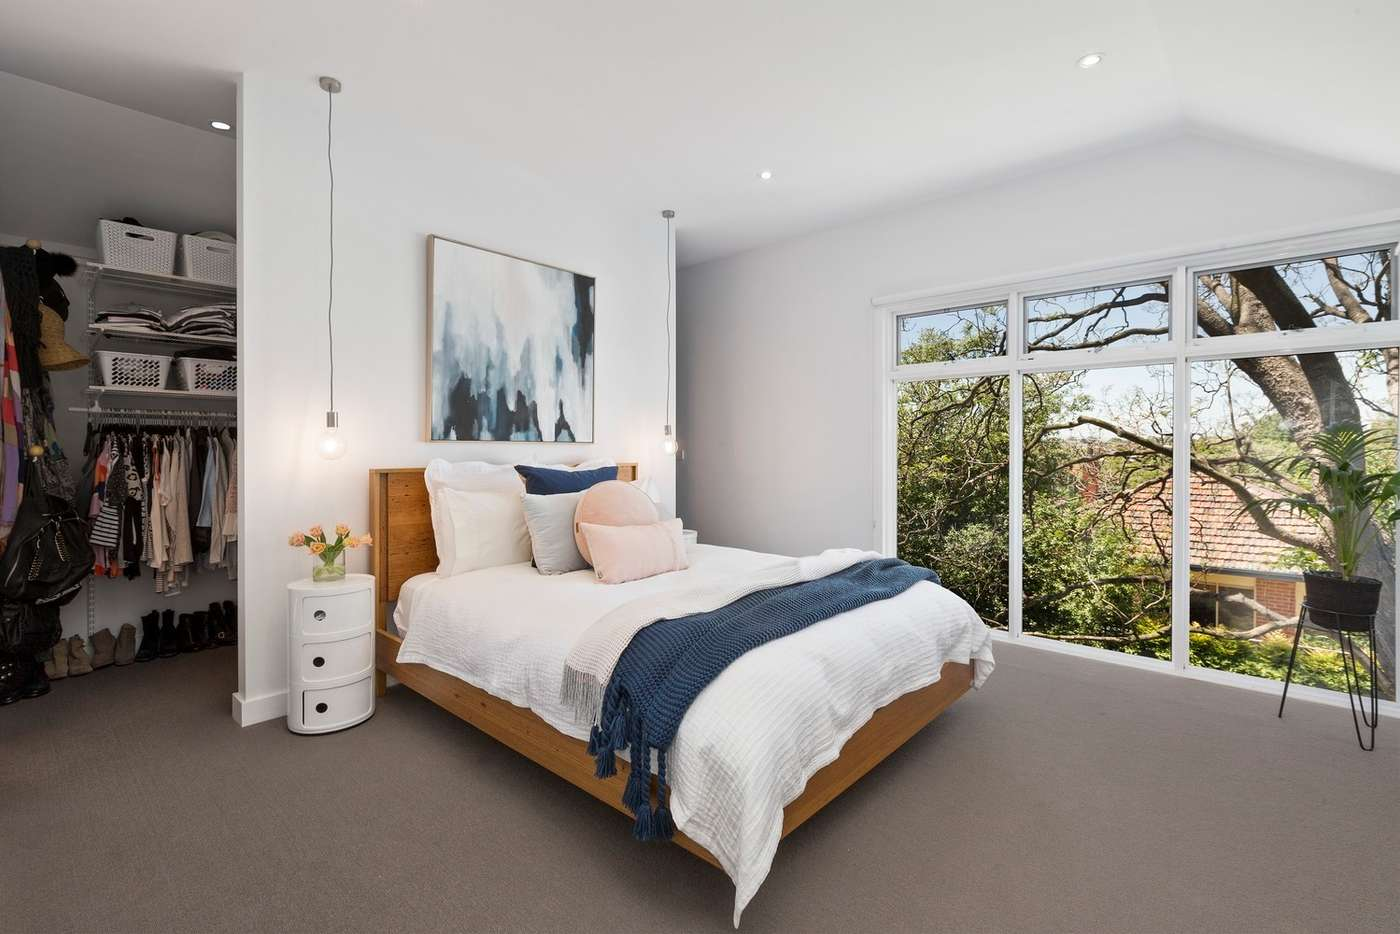 Sixth view of Homely house listing, 36 Poplar Street, Caulfield South VIC 3162